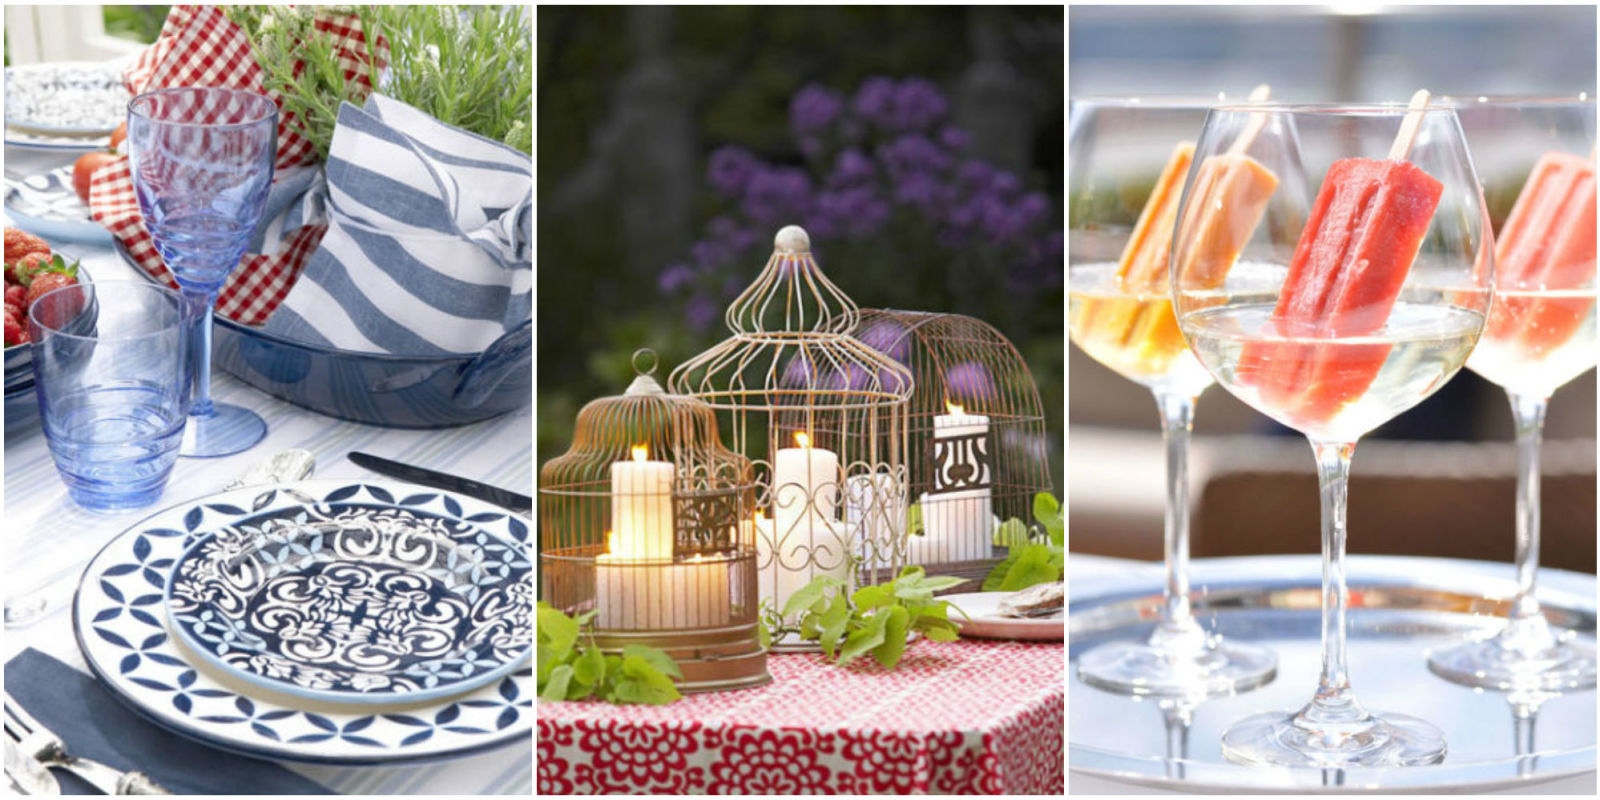 50 summer party ideas and themes outdoor entertaining tips Summer party themes